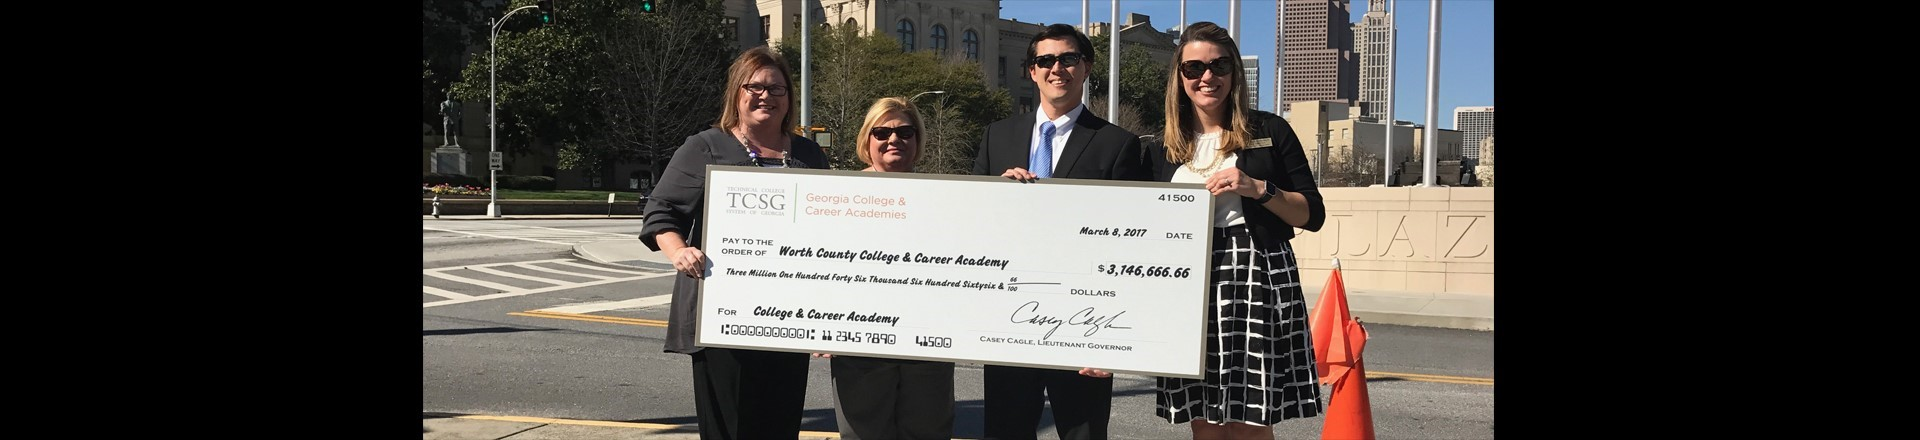 WCHS receives over $3 million for College & Career Academy grant!